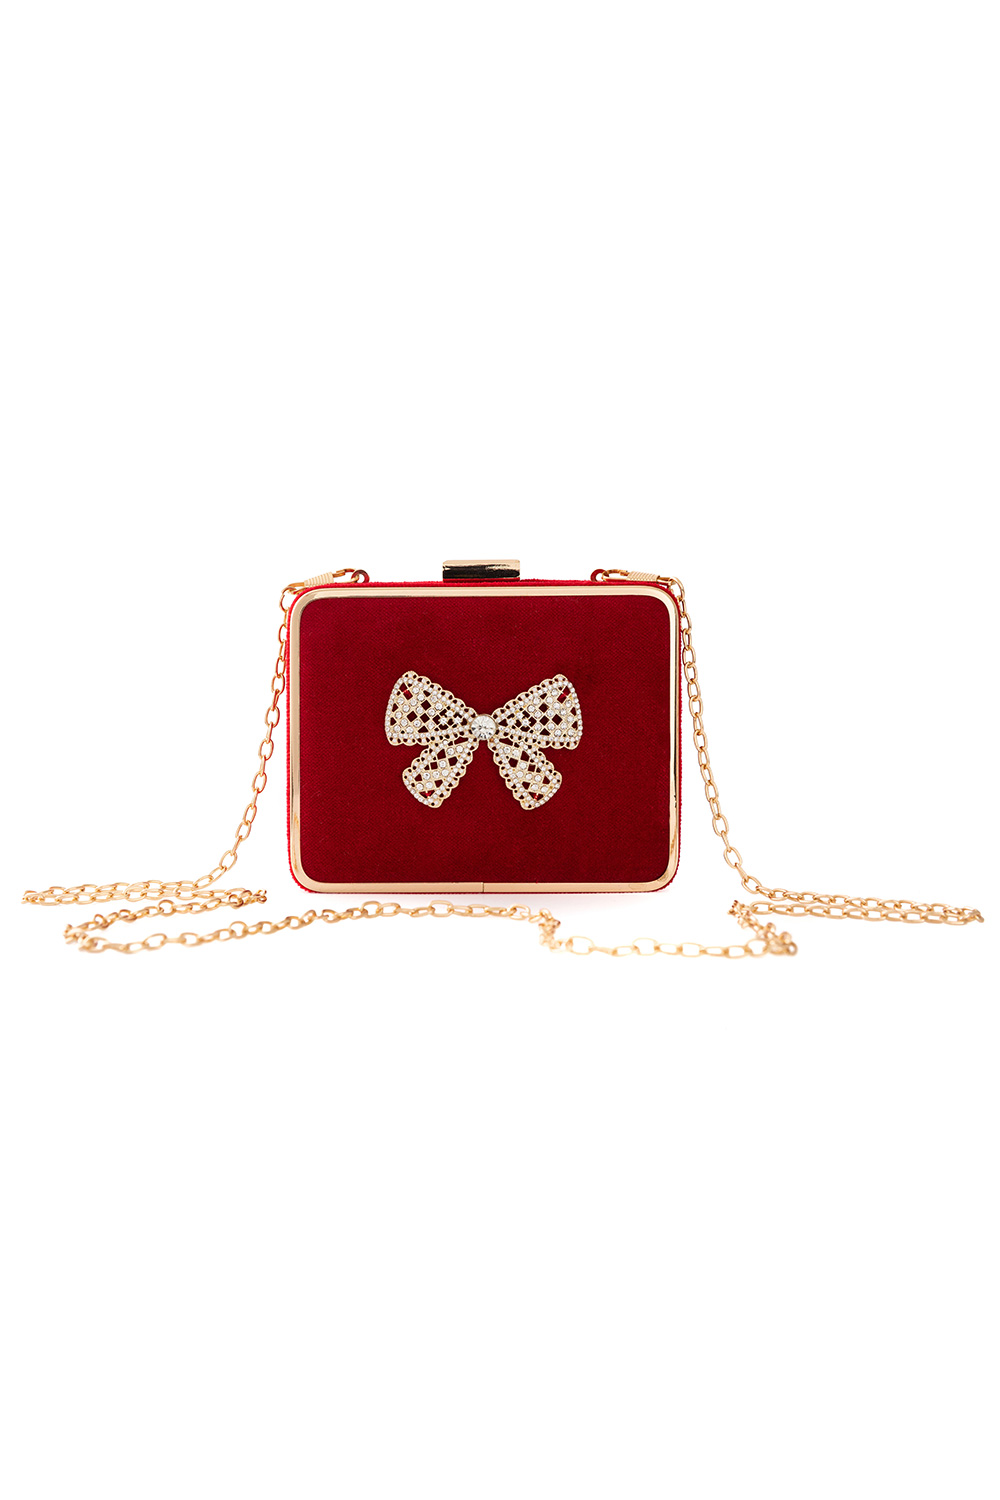 cherry red embellished clutch